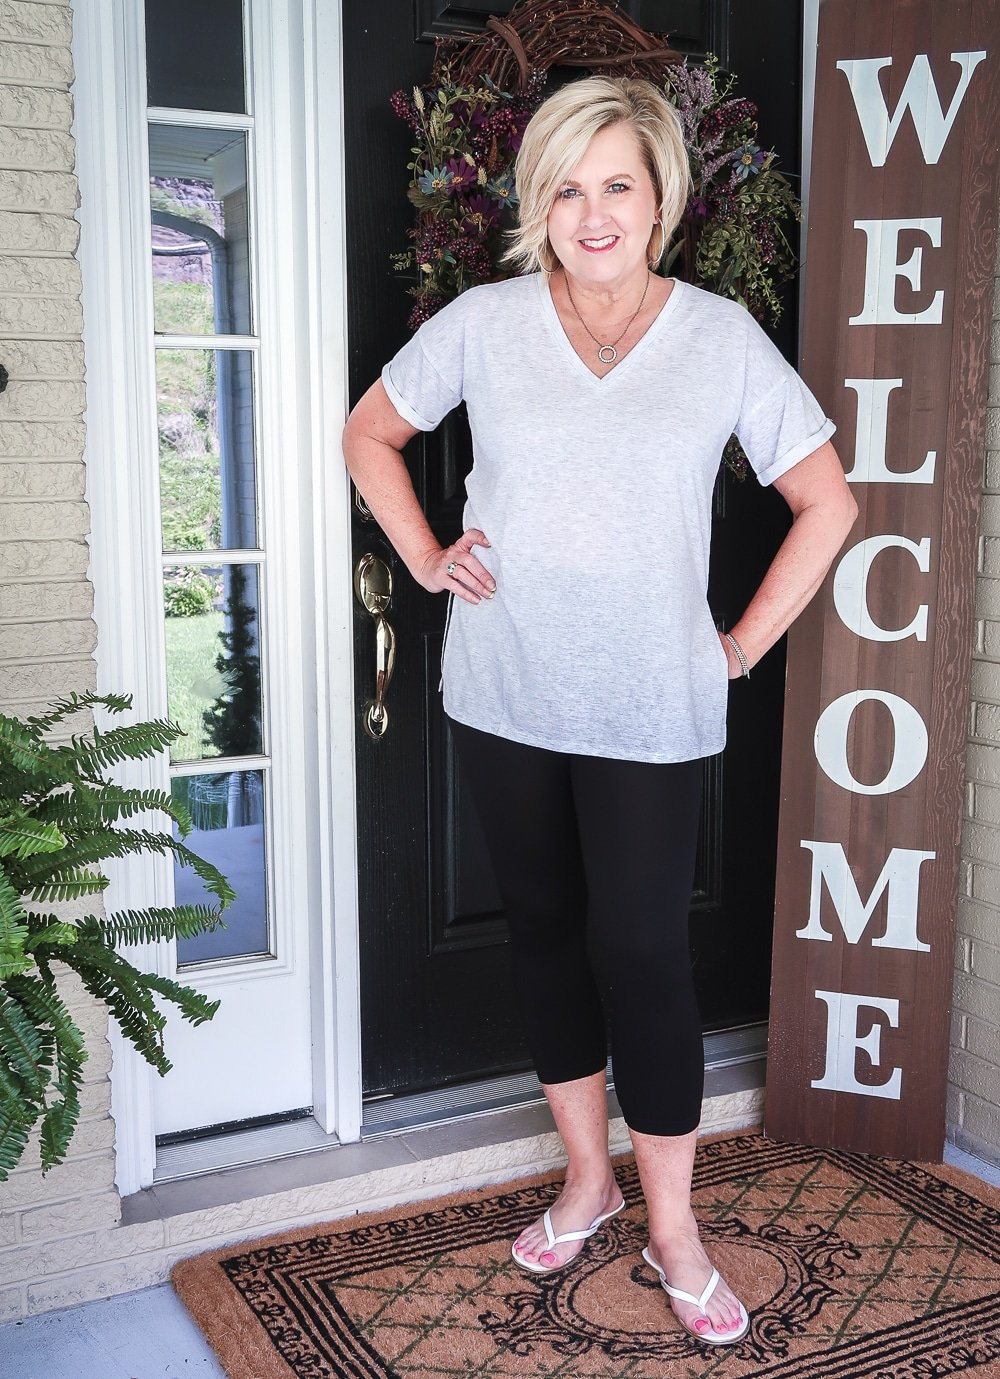 FASHION BLOGGER 50 IS NOT OLD IS WEARING A LIGHT GRAY TOP AND BLACK CAPRI LEGGINGS WITH A PAIR OF WHITE FLIP FLOPS